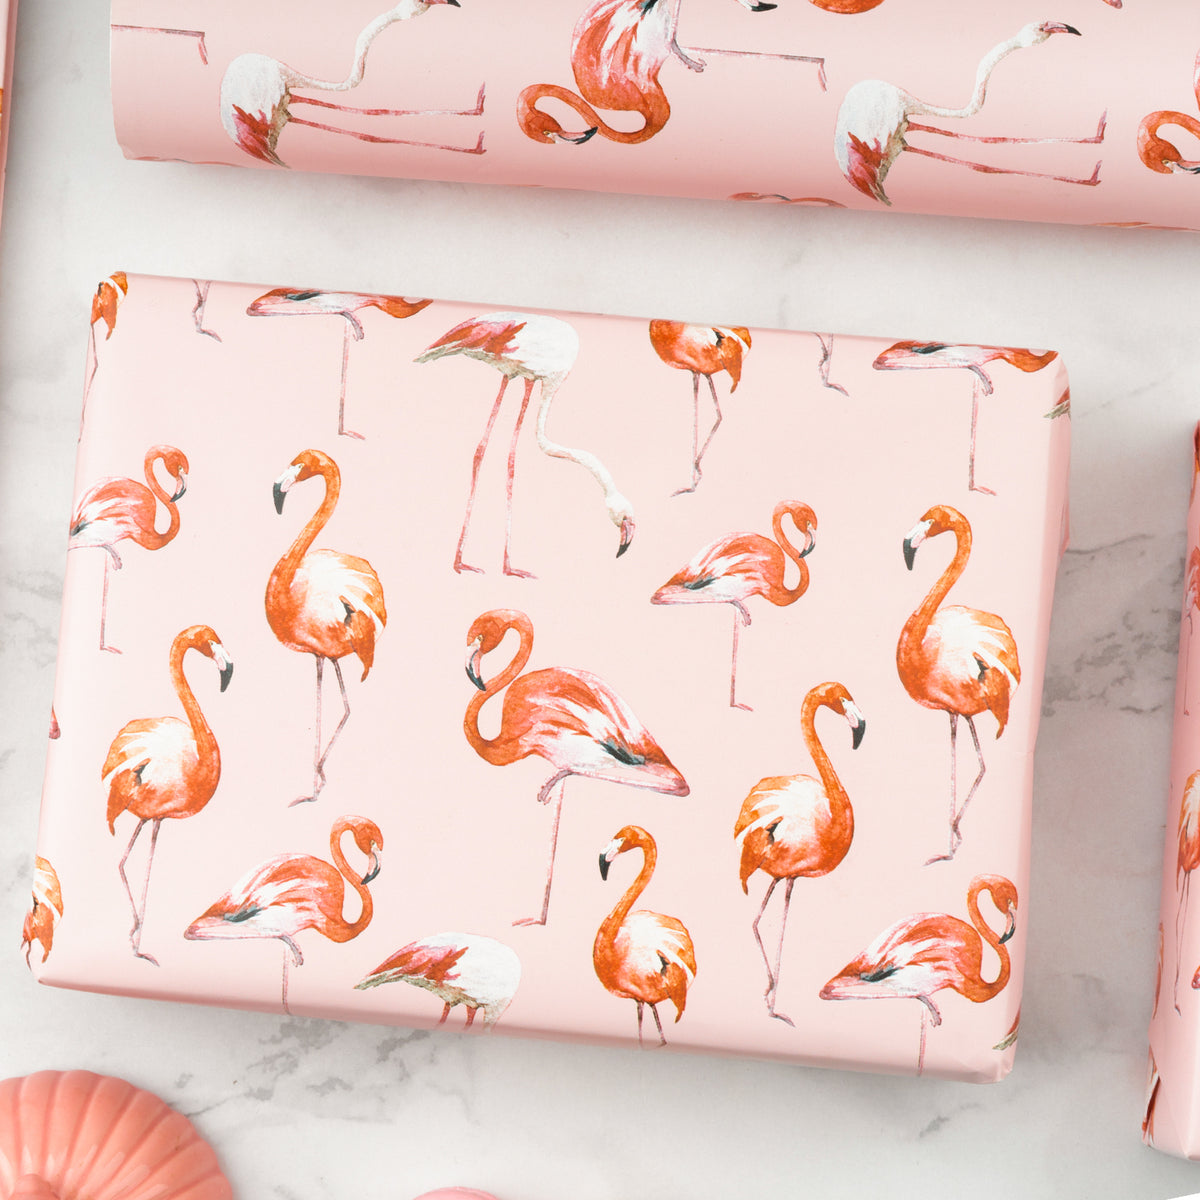 Wrapaholic-Flamingo-Design-with-Cut -Lines-Gift-Wrapping-Paper-Roll-6